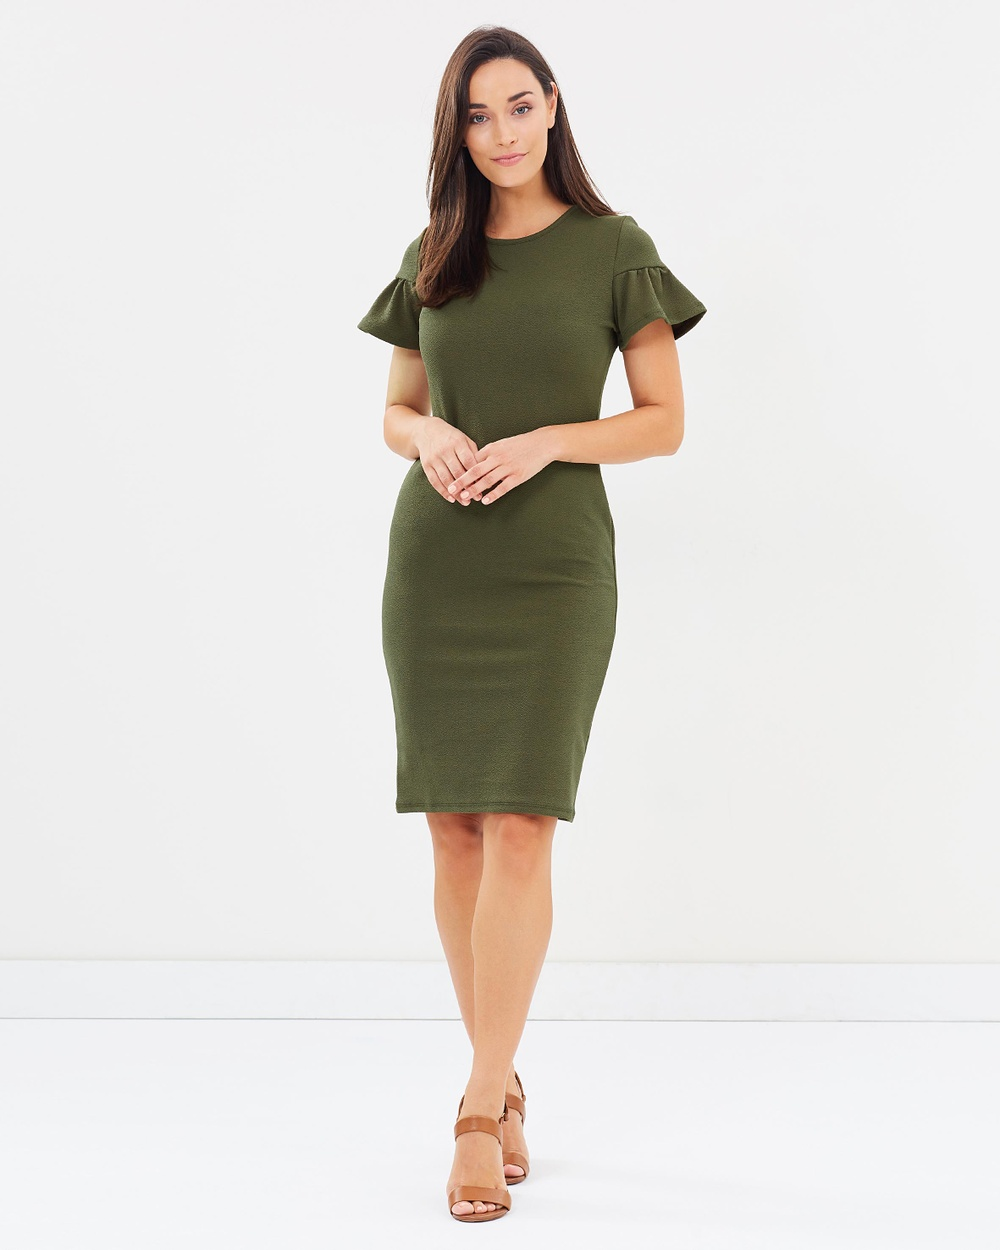 Dorothy Perkins Drawstring Detail Bodycon Dress Bodycon Dresses Green Drawstring Detail Bodycon Dress